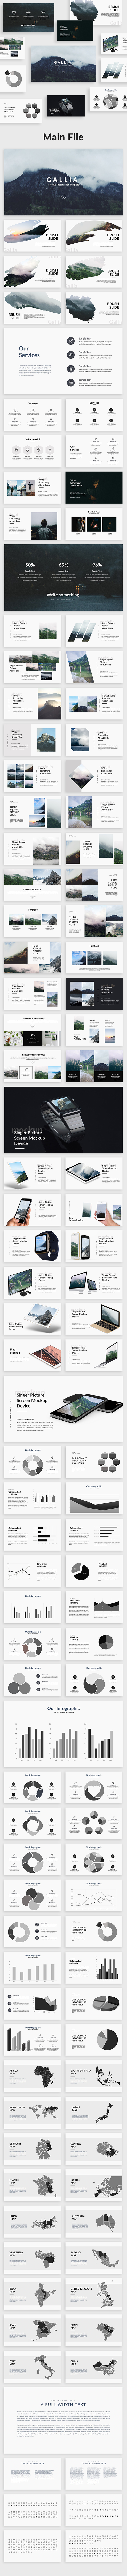 Gallia - Creative Google Slide Template by bypaintdesign | GraphicRiver